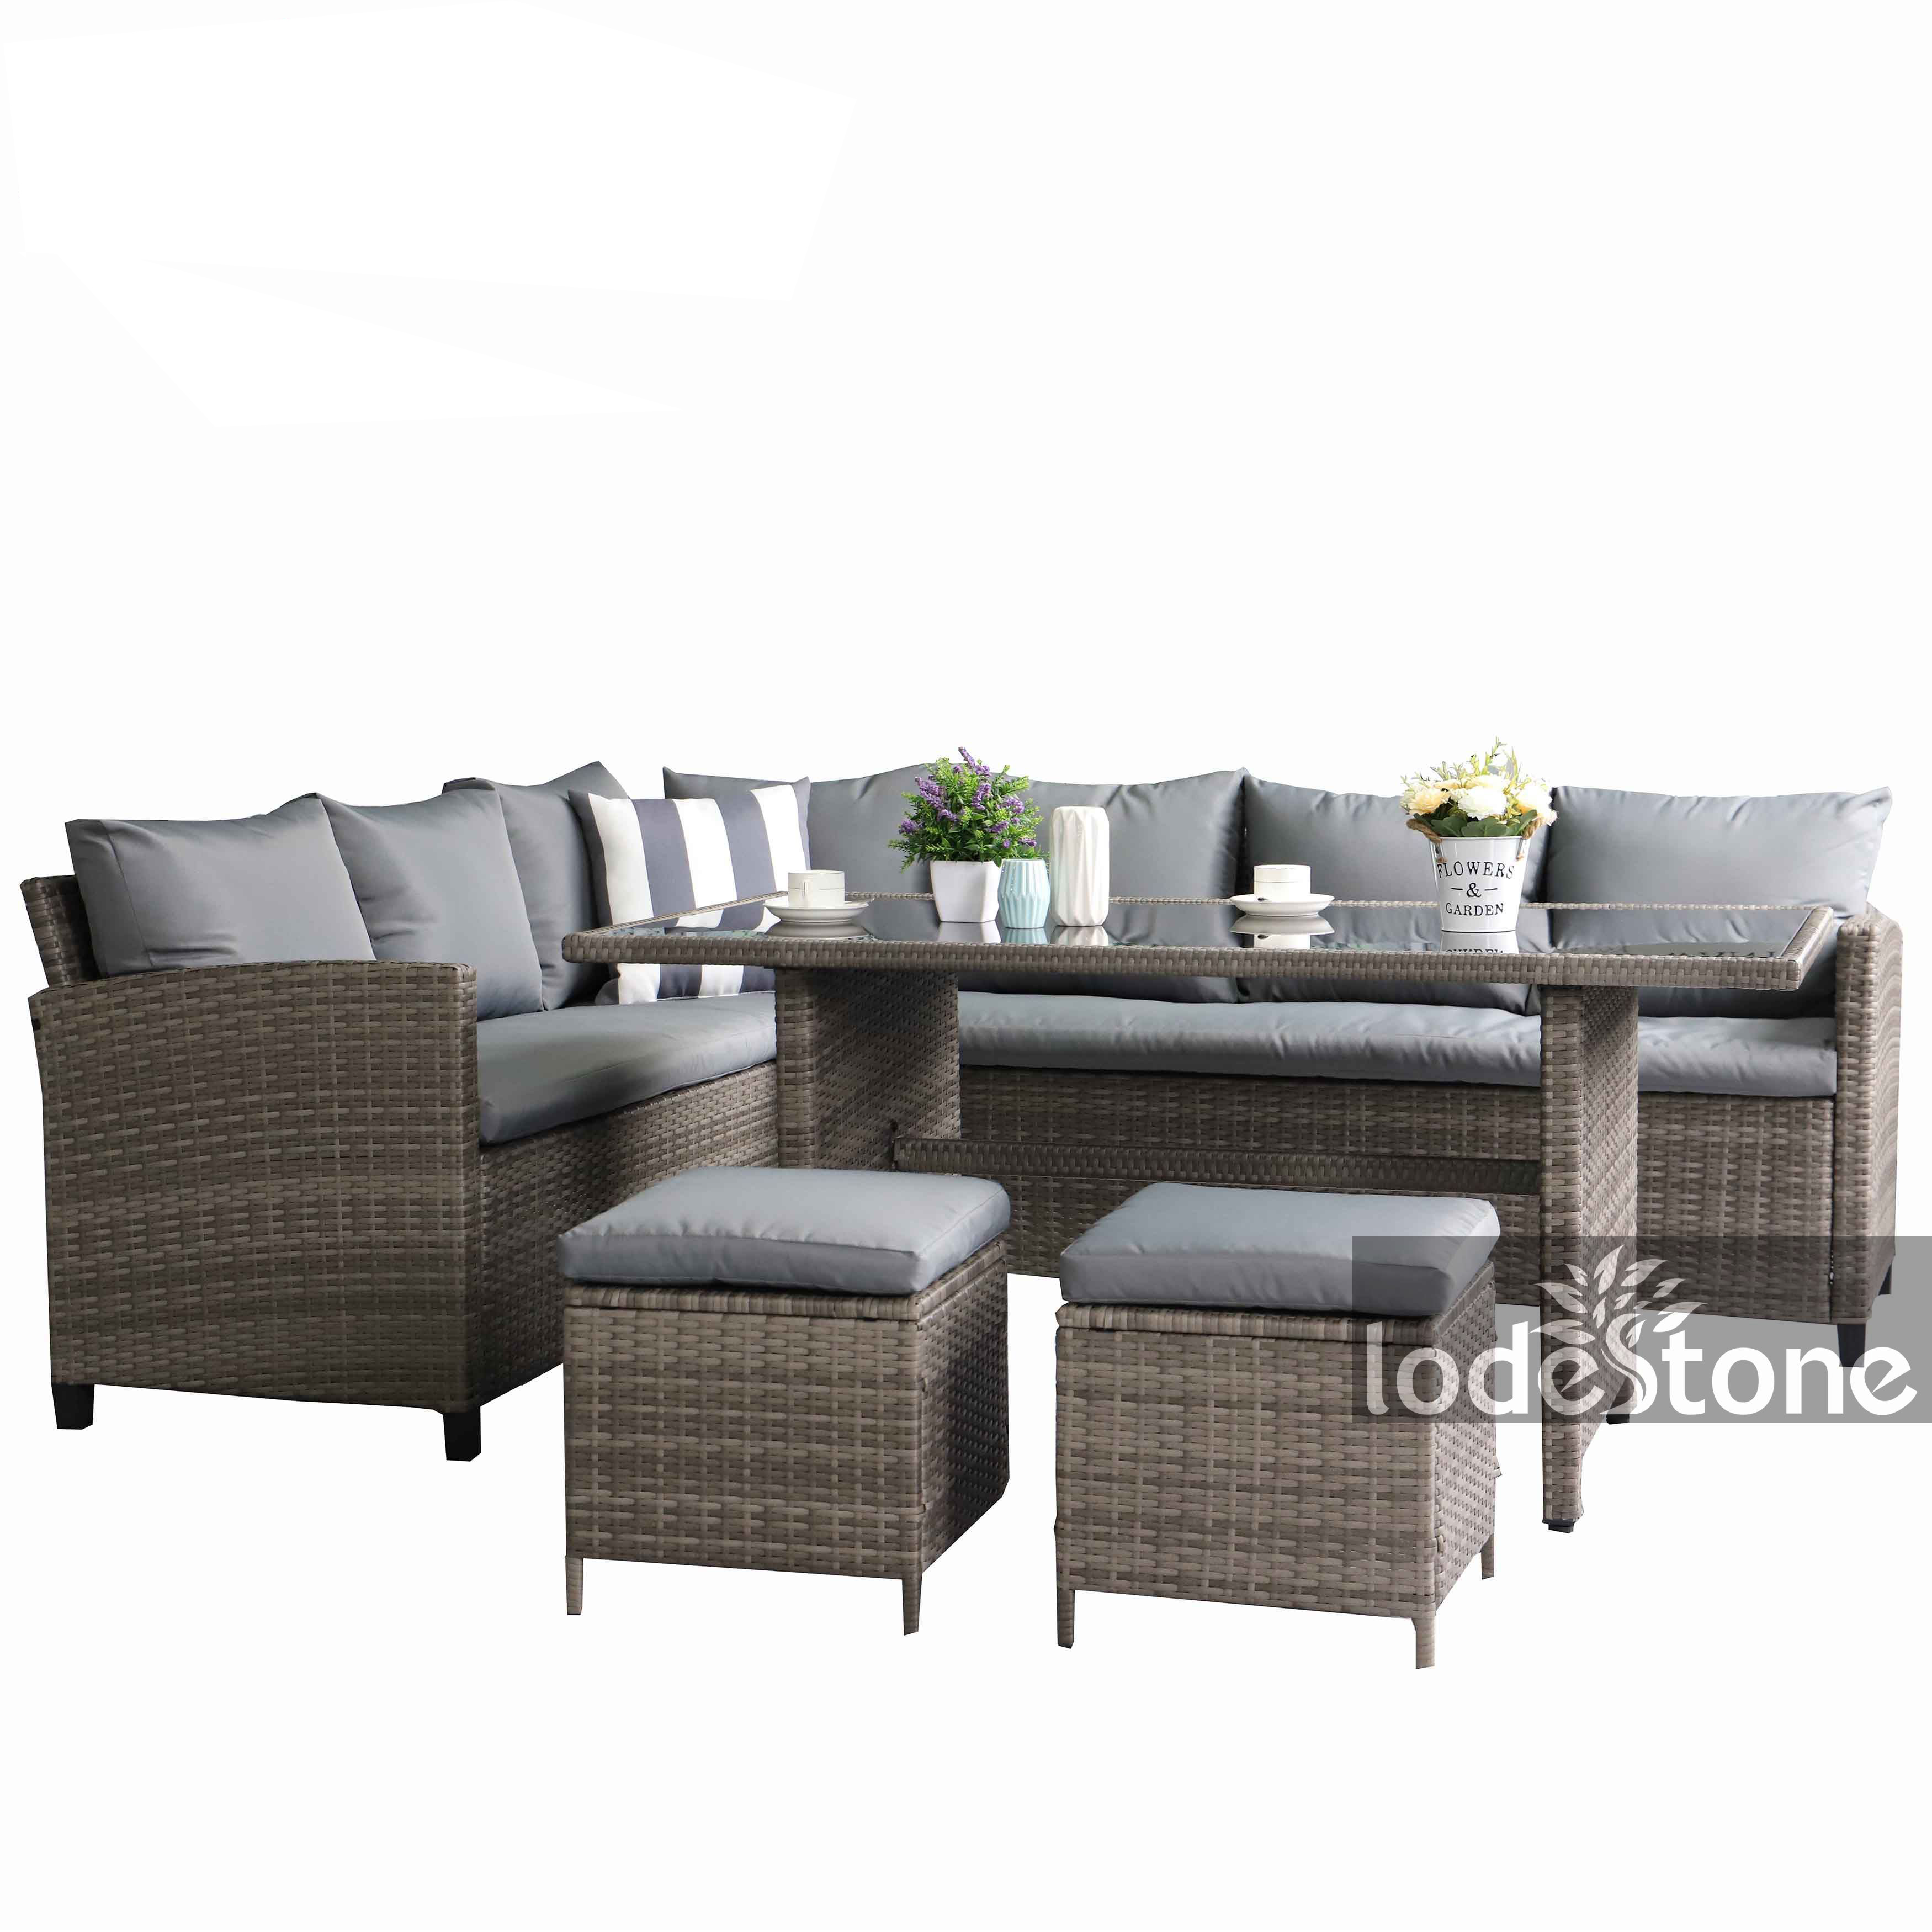 Magnificent 5Pcs K D Hot Selling Rattan Furniture Garden Sofa Outdoor Furniture China Buy Rattan Furniture Garden Sofa Outdoor Furniture China Product On Home Interior And Landscaping Ologienasavecom